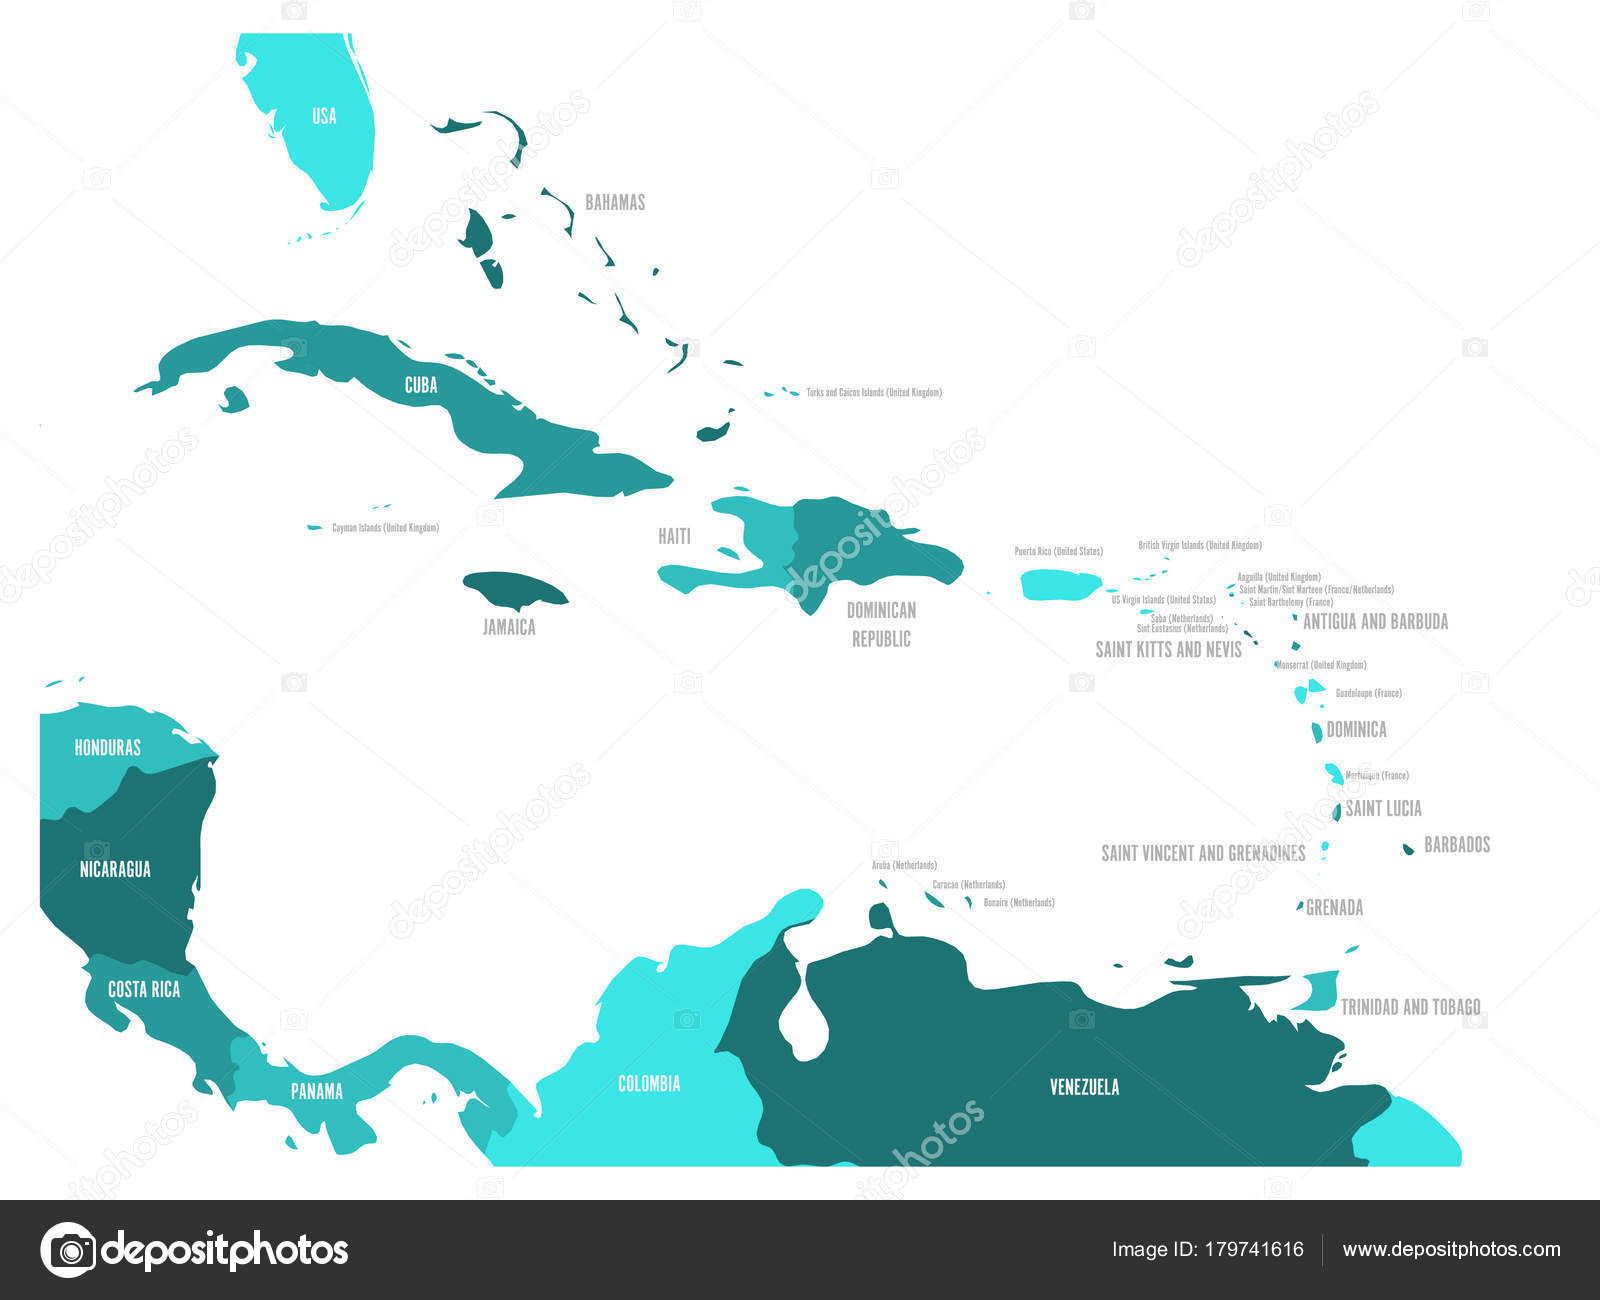 Central america and caribbean states political map in four shades of central america and caribbean states political map in four shades of turquoise blue with black country names labels simple flat vector illustration gumiabroncs Images